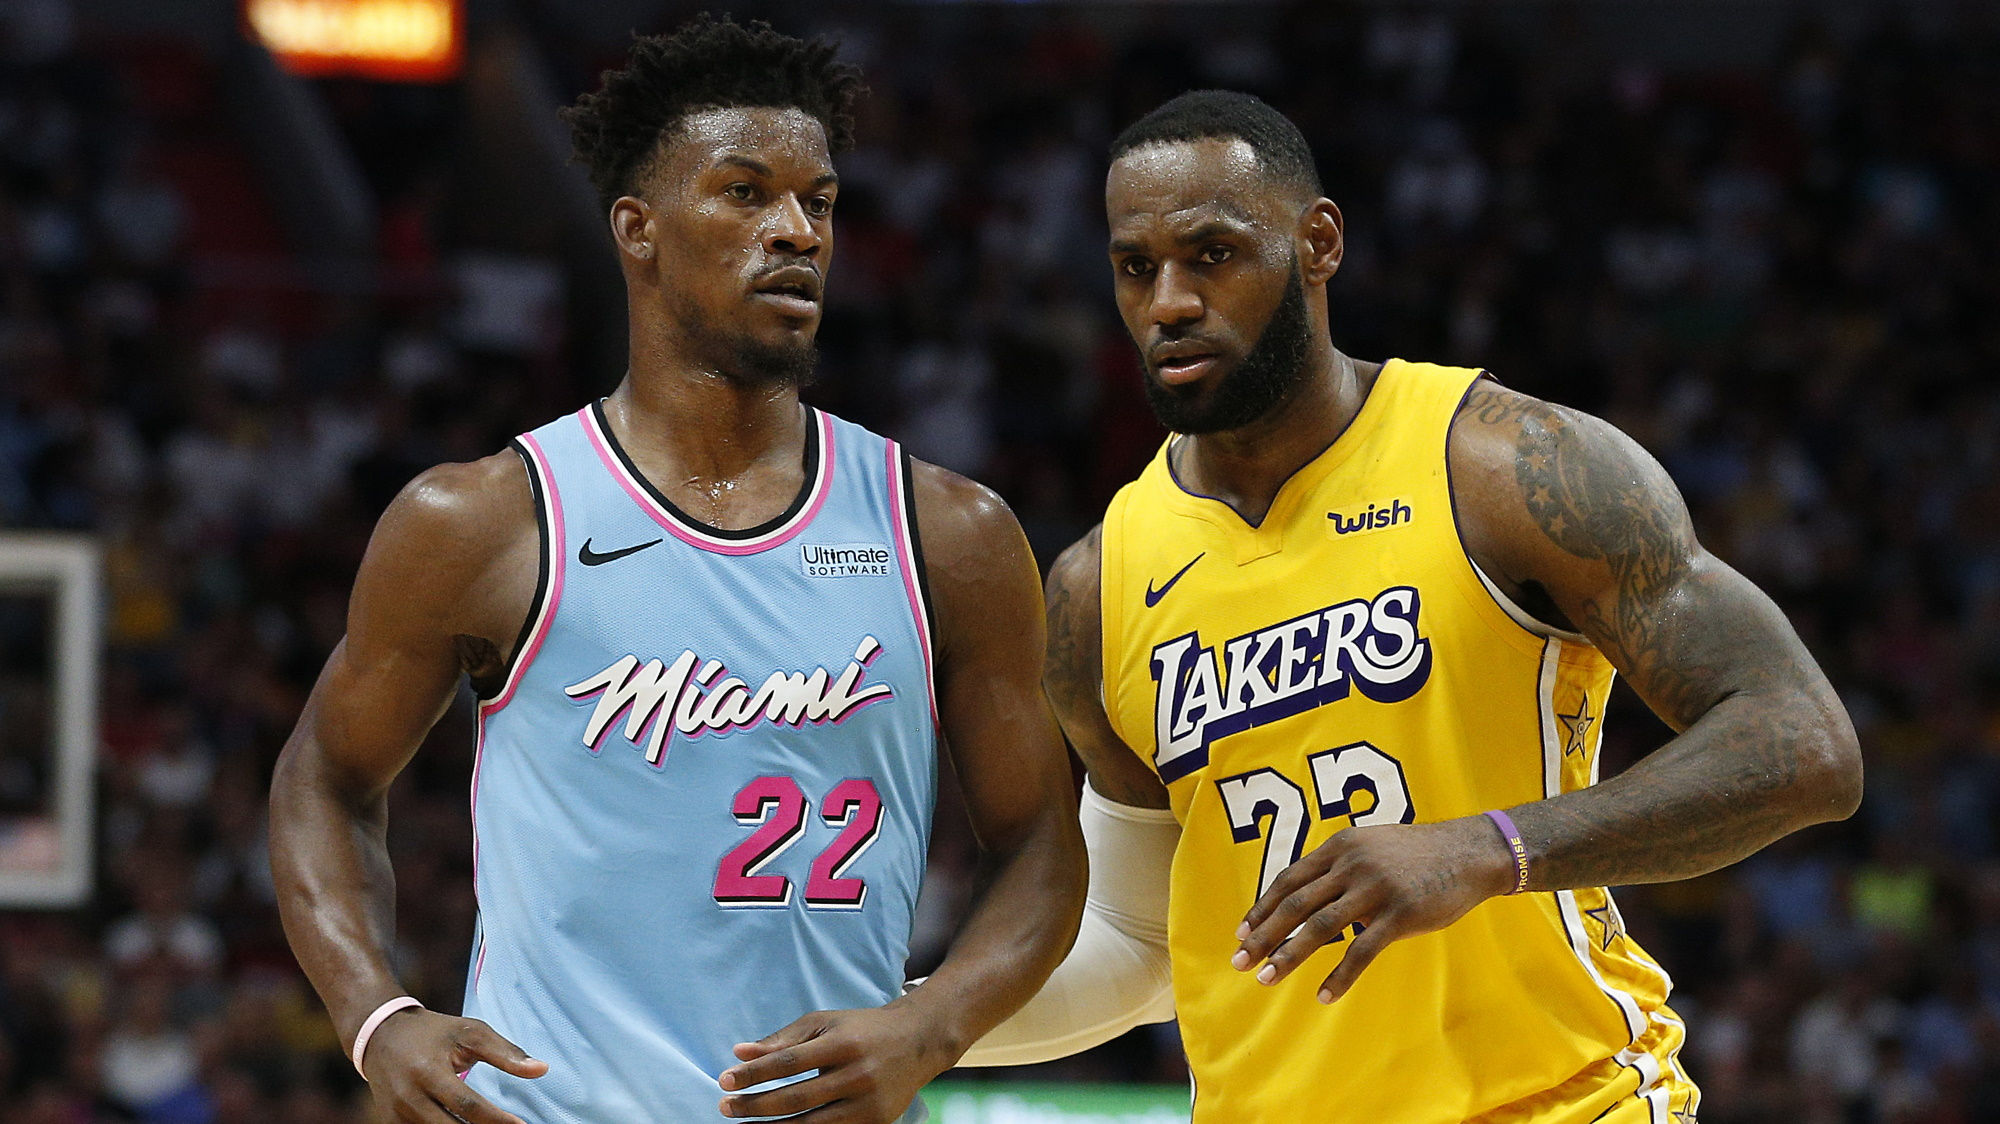 Lakers Vs Heat Live Stream How To Watch 2020 Nba Finals Online From Anywhere Techradar